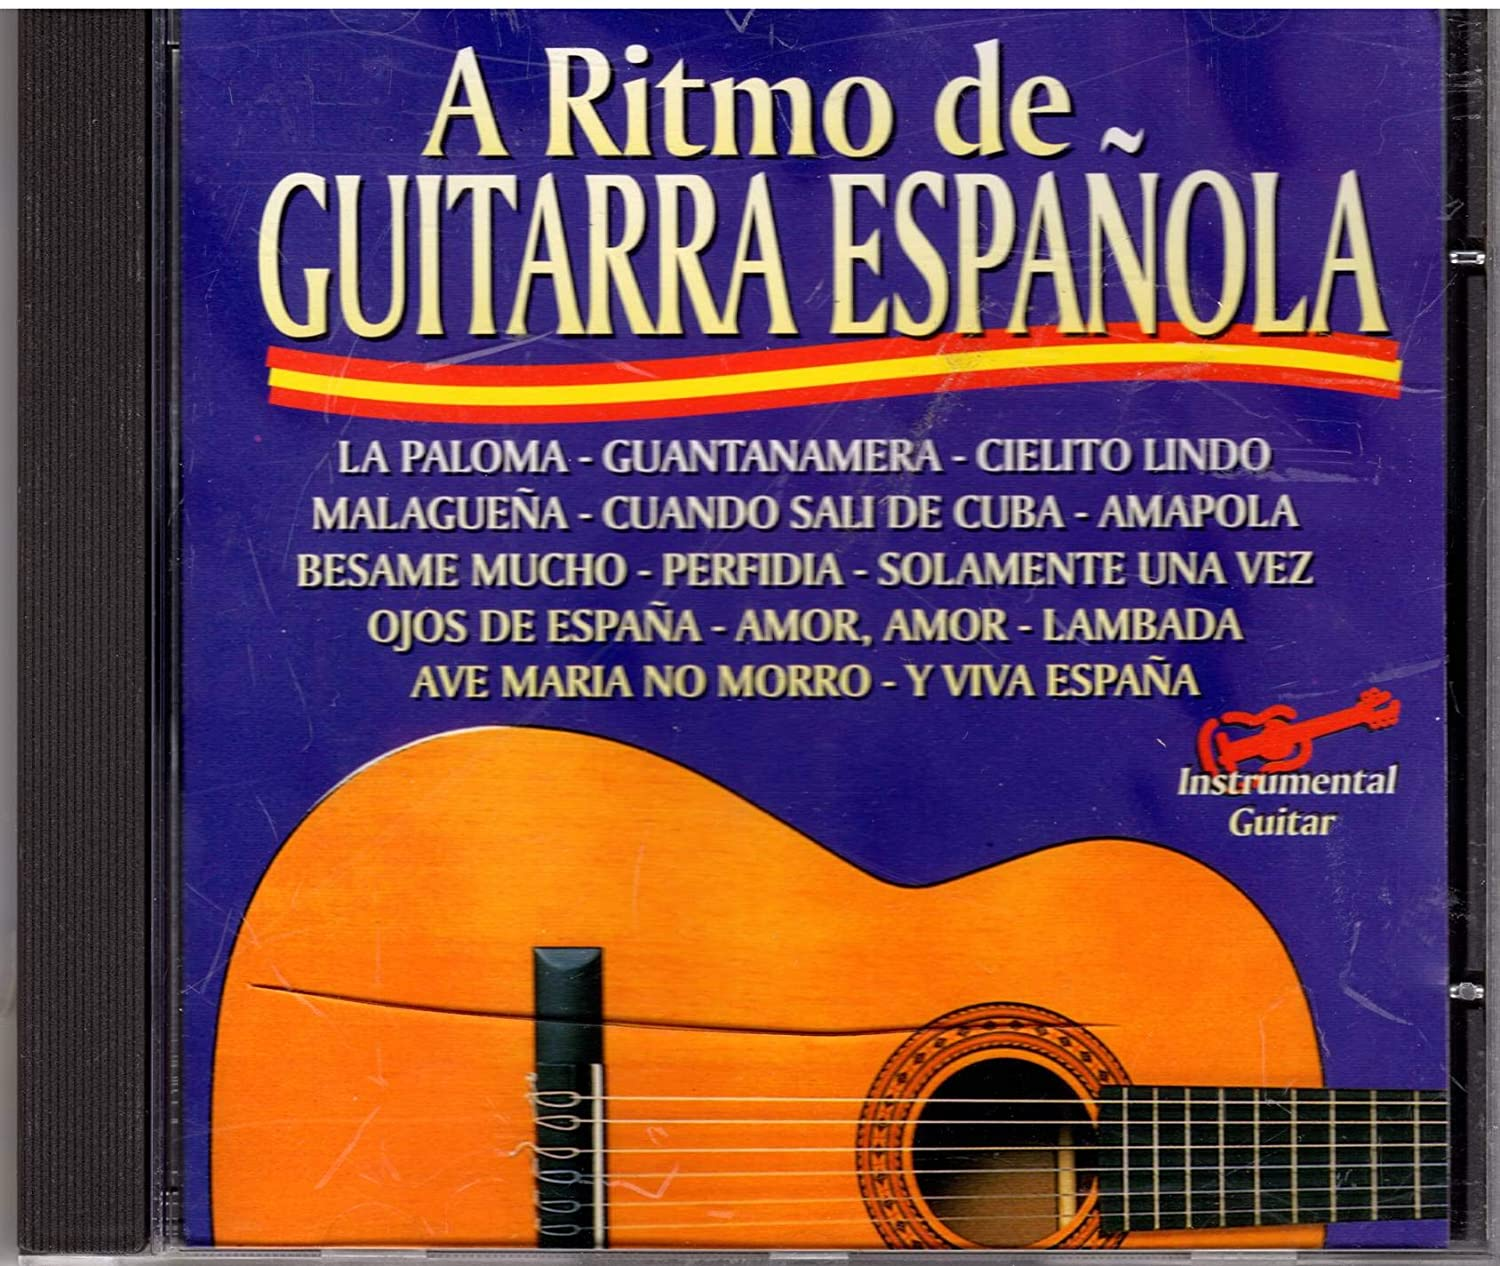 Ritmo De Guitarra Espanola: Various Artists: Amazon.es: Música